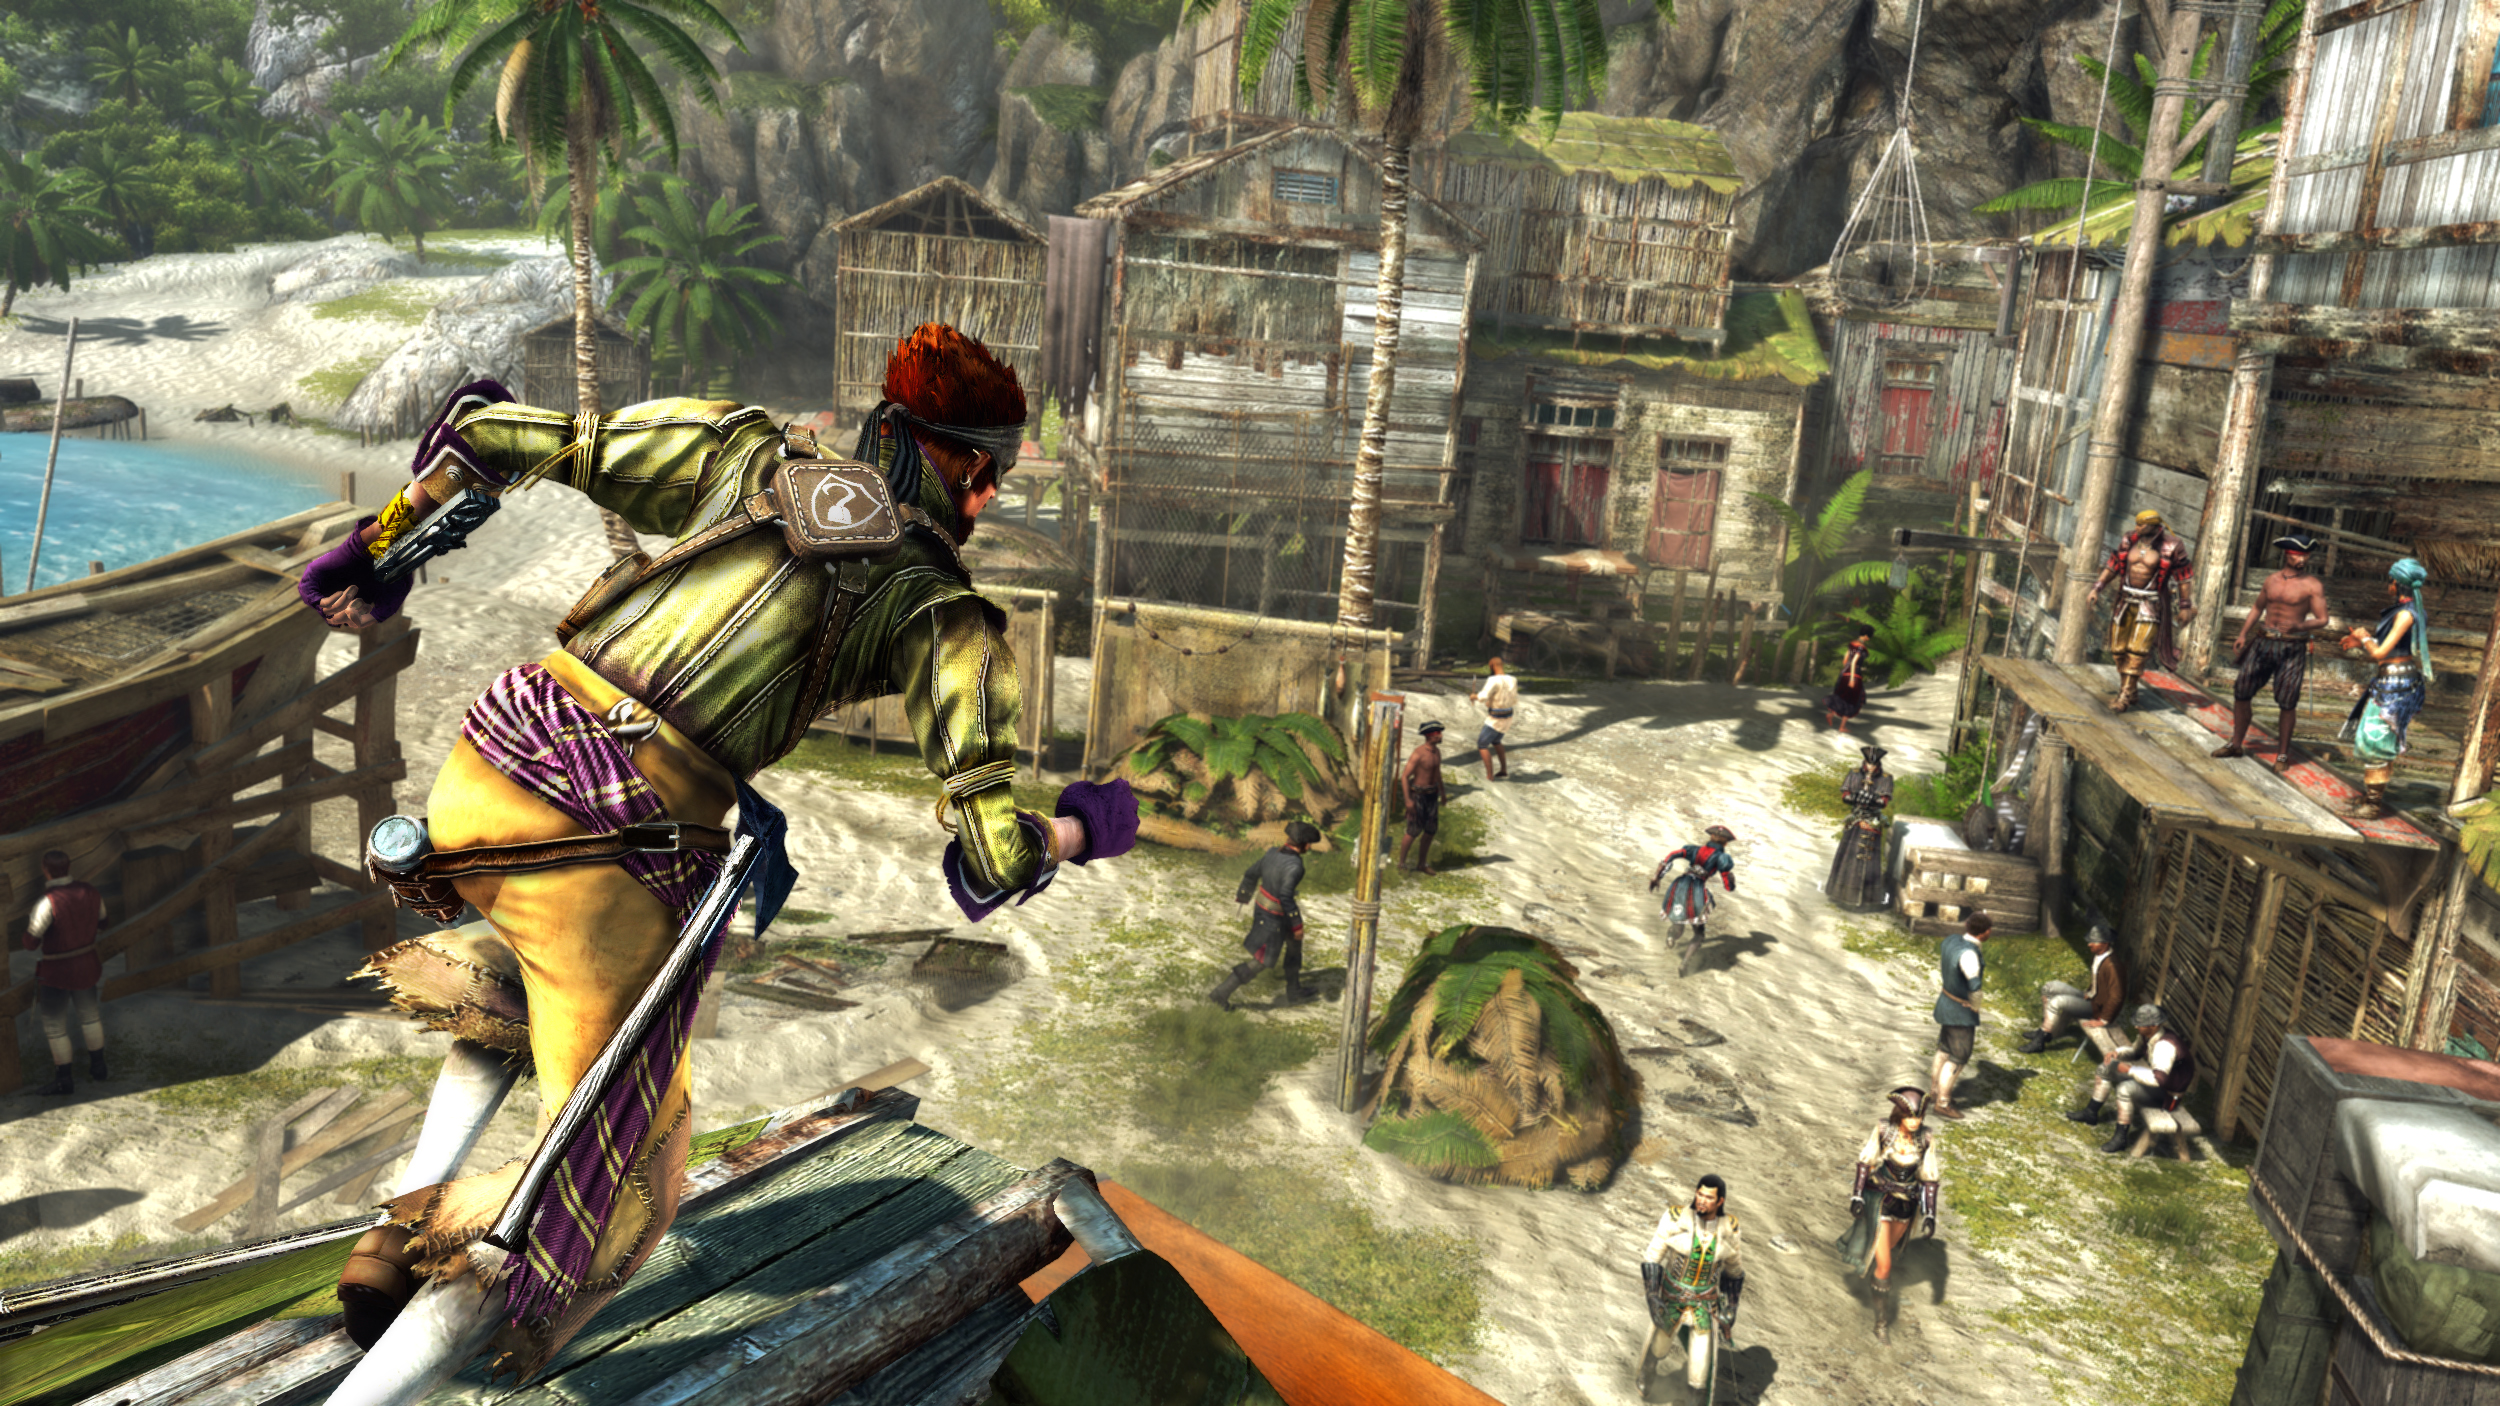 assassins creed iv black flag pc game free download - HD 1540×863